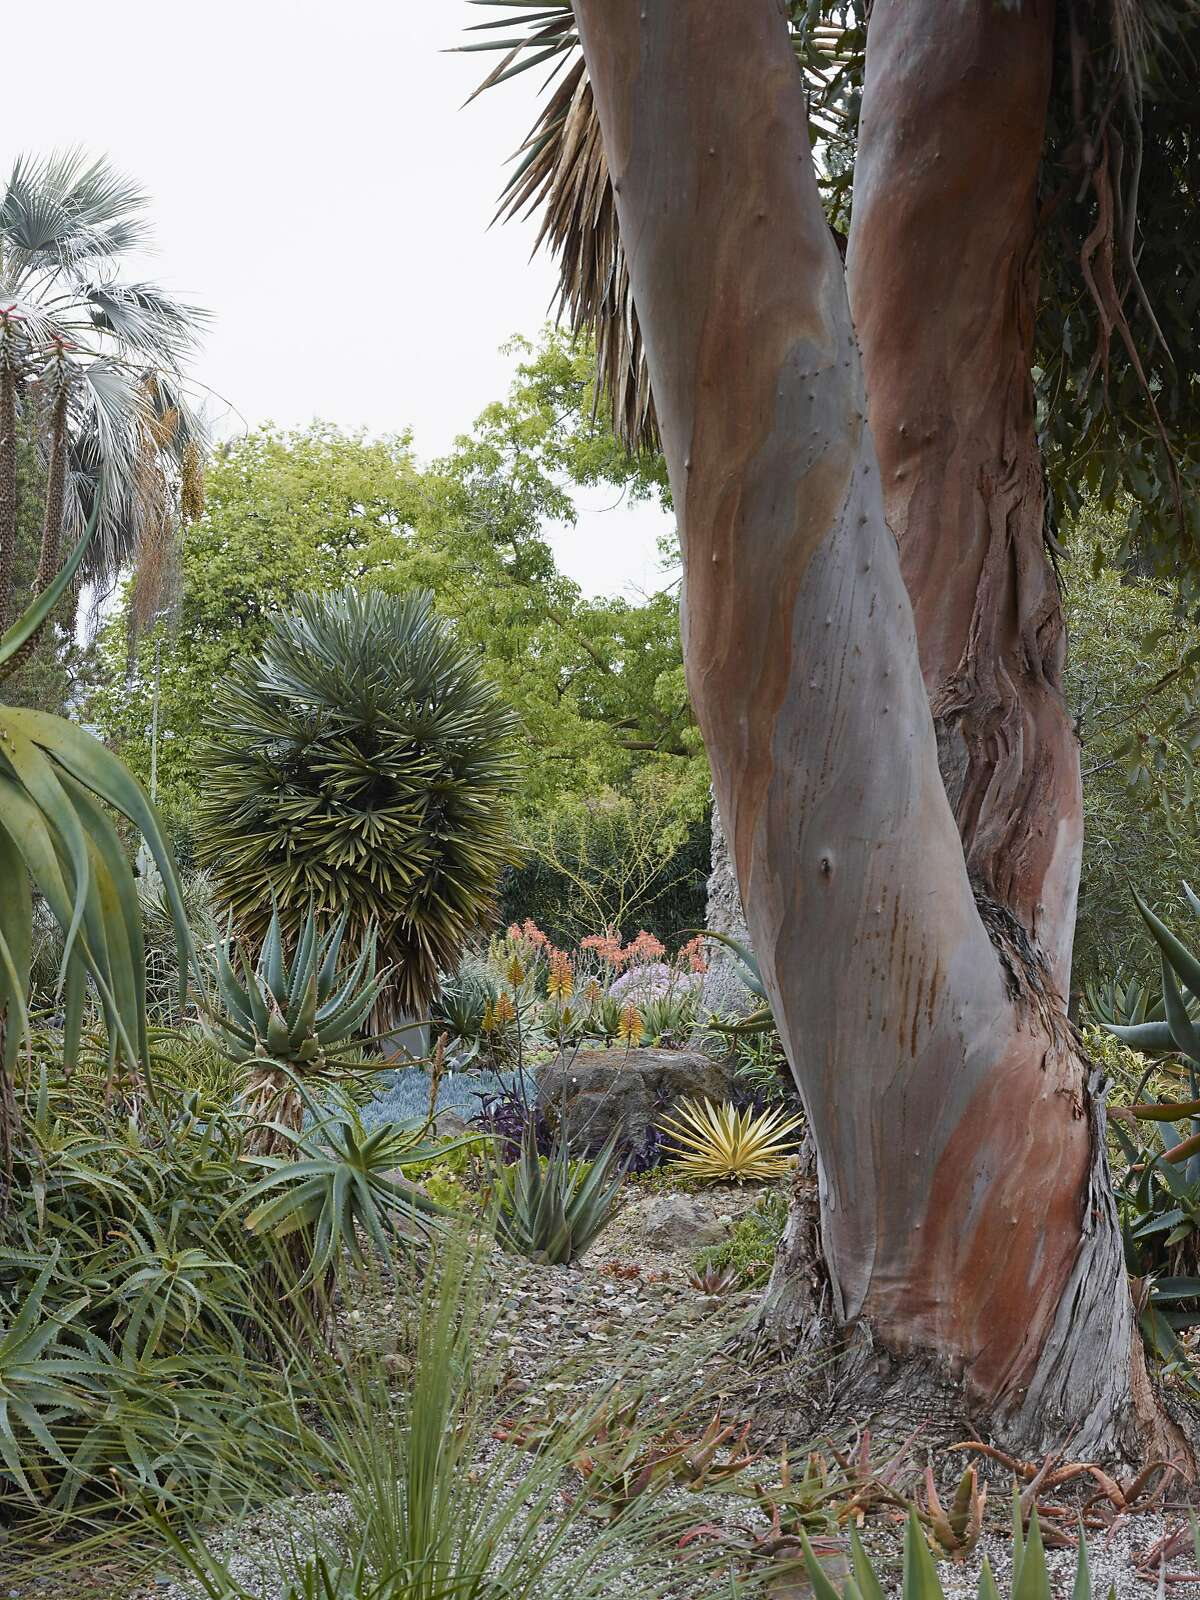 Eucalyptus kitsoniana, a Lester contribution, still stands tall in the garden with gorgeous exfoliating bark. (pg. 218)�--Taken from�The Bold Dry Garden�� Copyright 2016 by Johanna Silver and The Ruth Bancroft Garden. All rights reserved. Published by Timber Press, Portland, OR. Used by permission of the publisher.